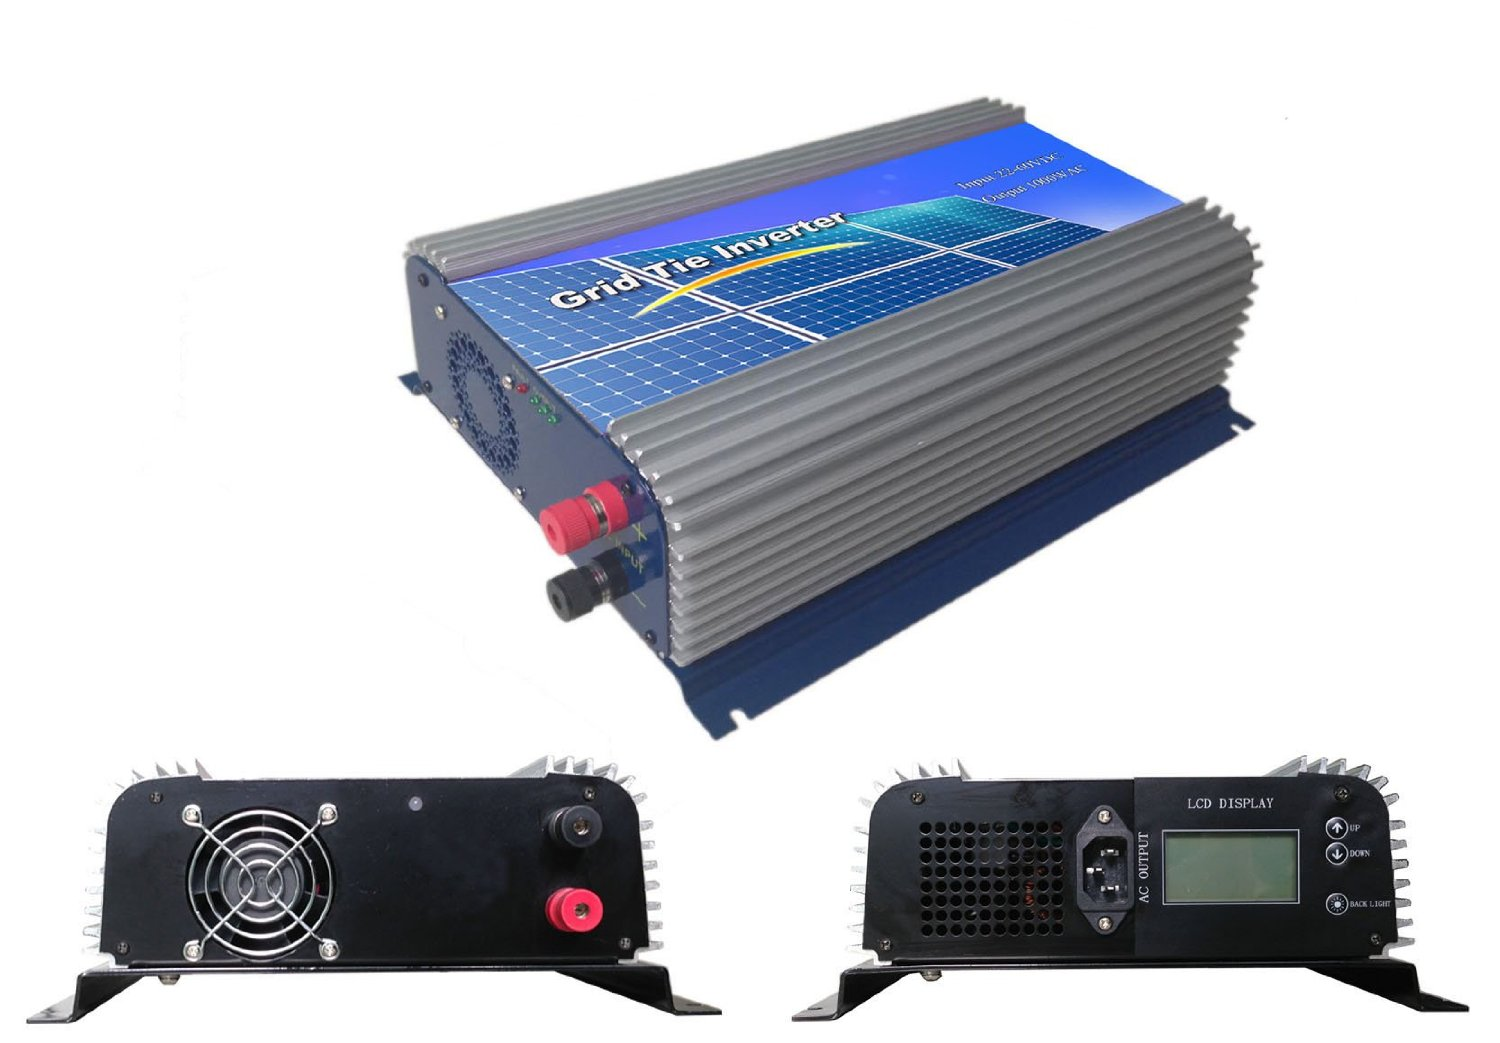 DECEN 1000w High Efficiency Pure Sine Wave Grid Tie Inverter,45-90vdc,110vac,60hz,LCD Display for Home Solar System